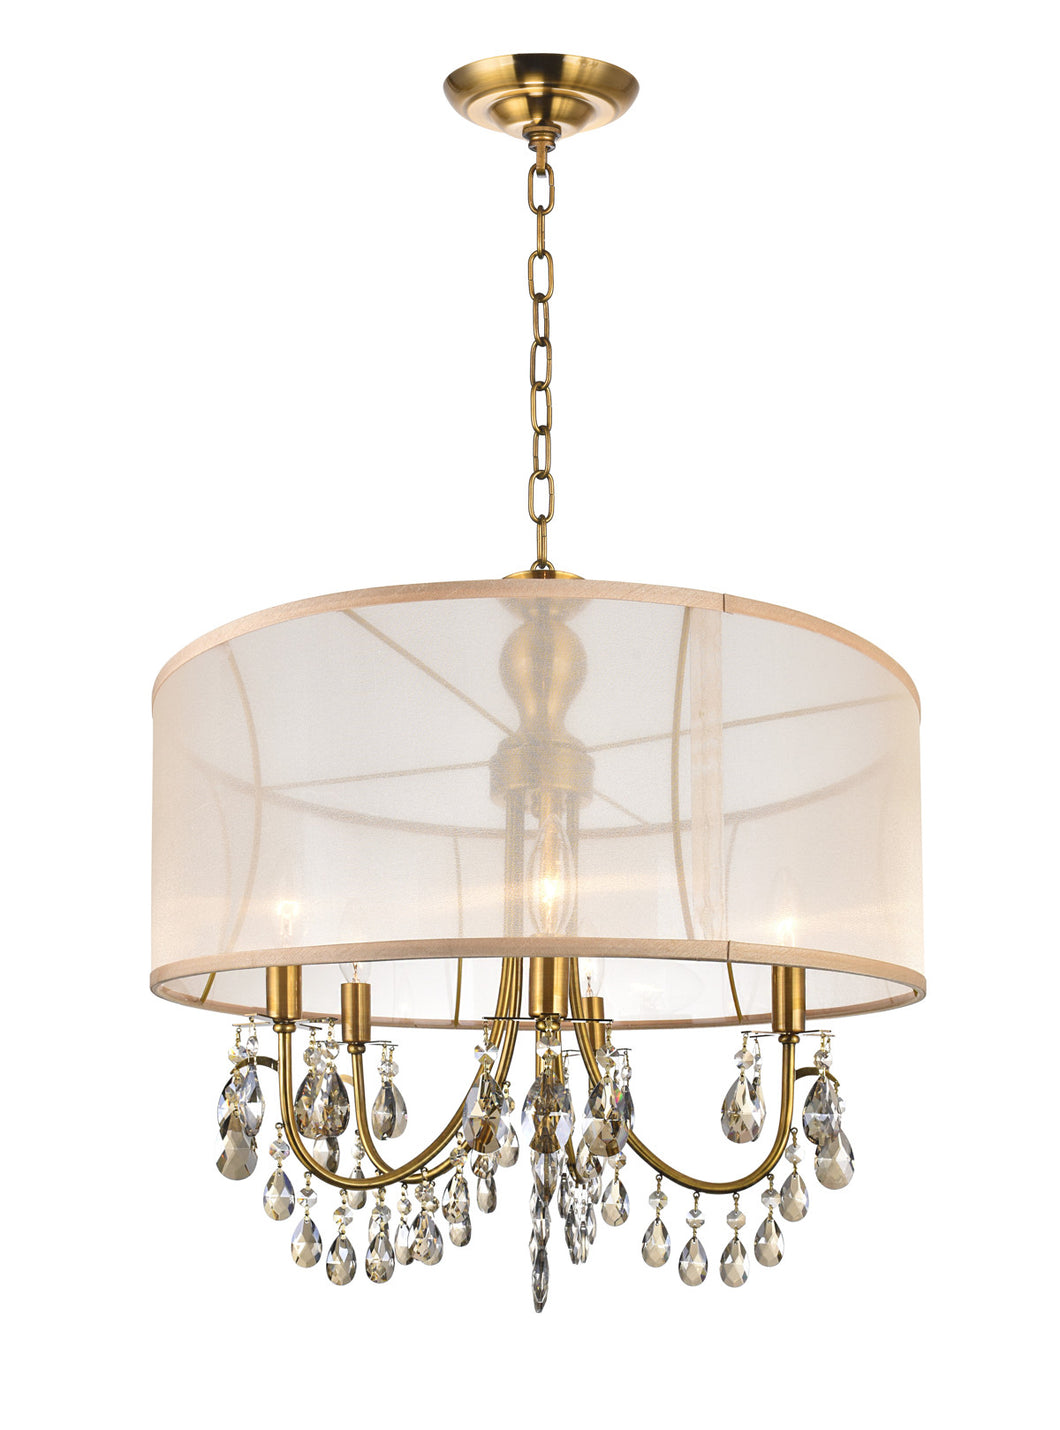 5 Light Drum Shade Chandelier with French Gold finish